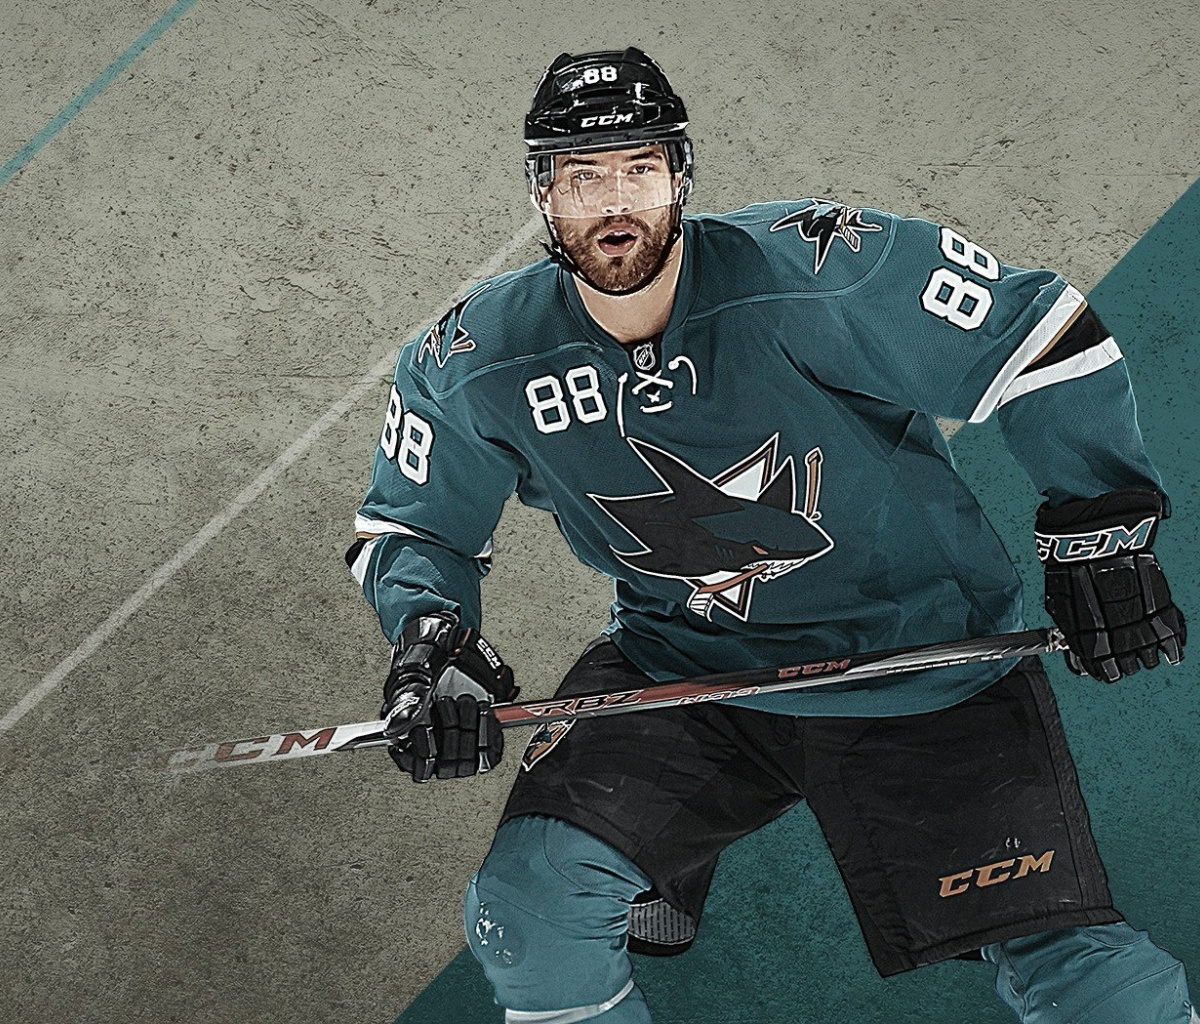 Fondo de pantalla Brent Burns from San Jose Sharks 1200x1024